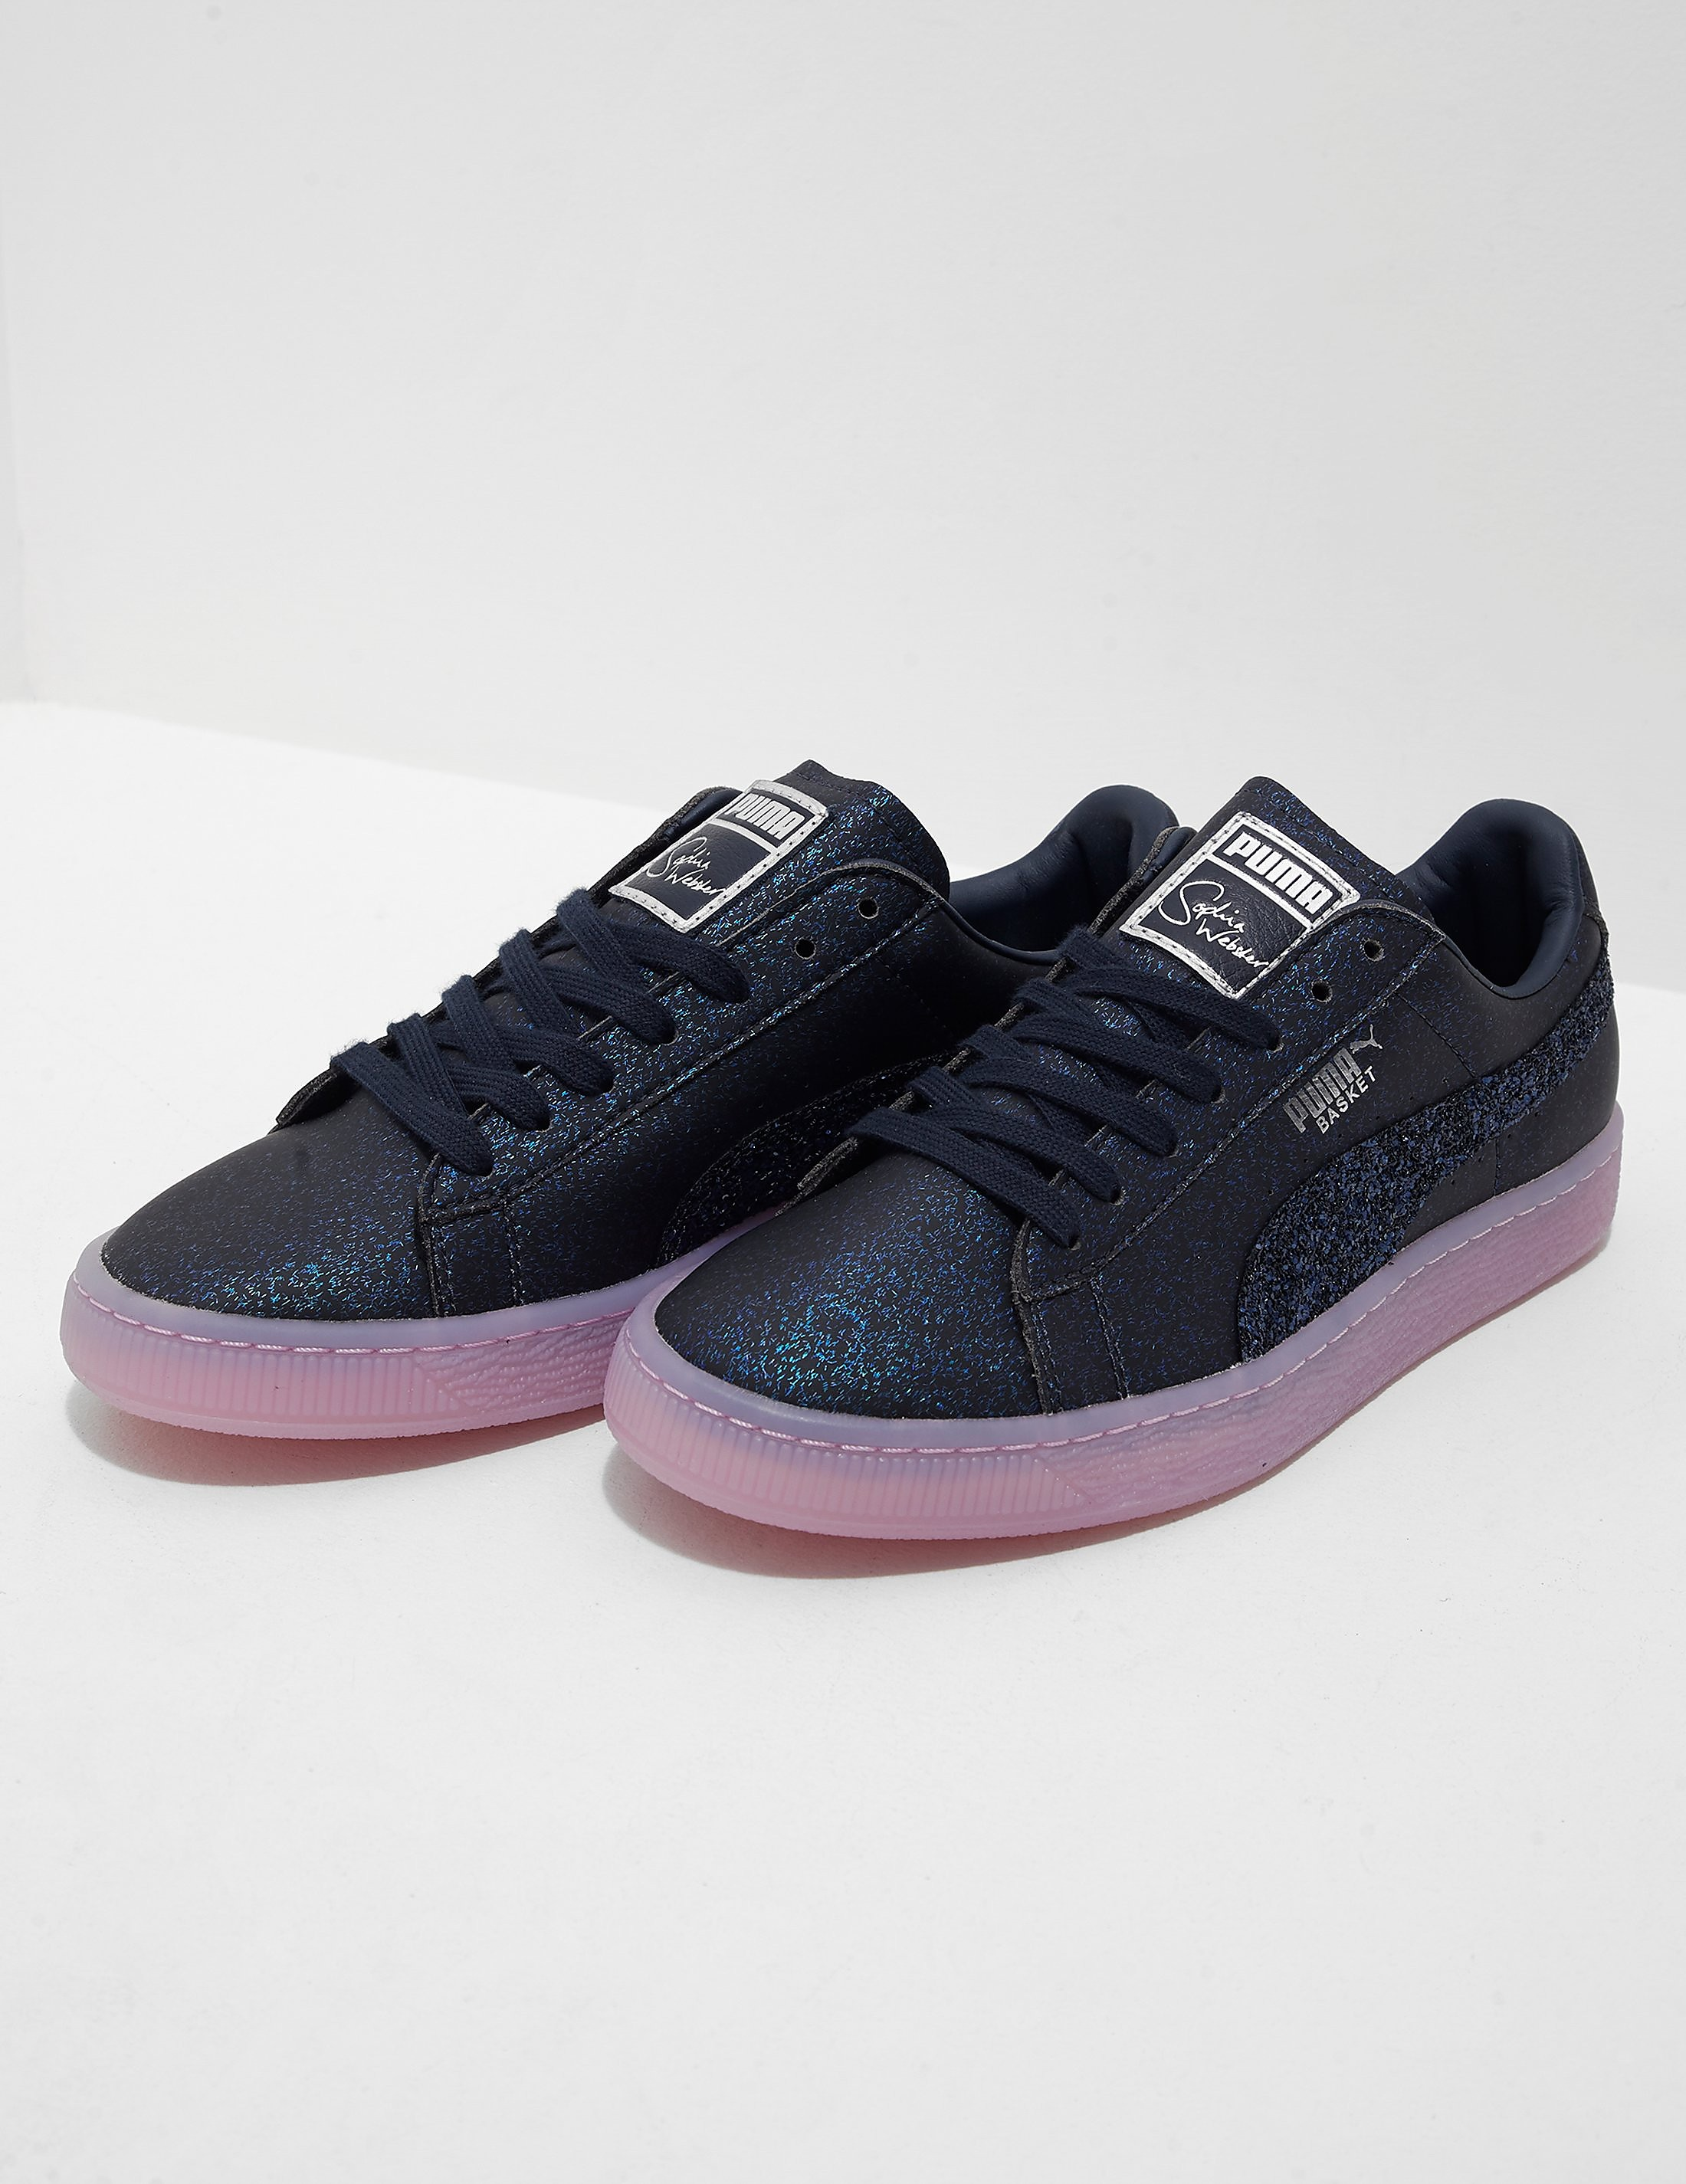 PUMA x Sophia Webster Basket Glitter Princess Trainers